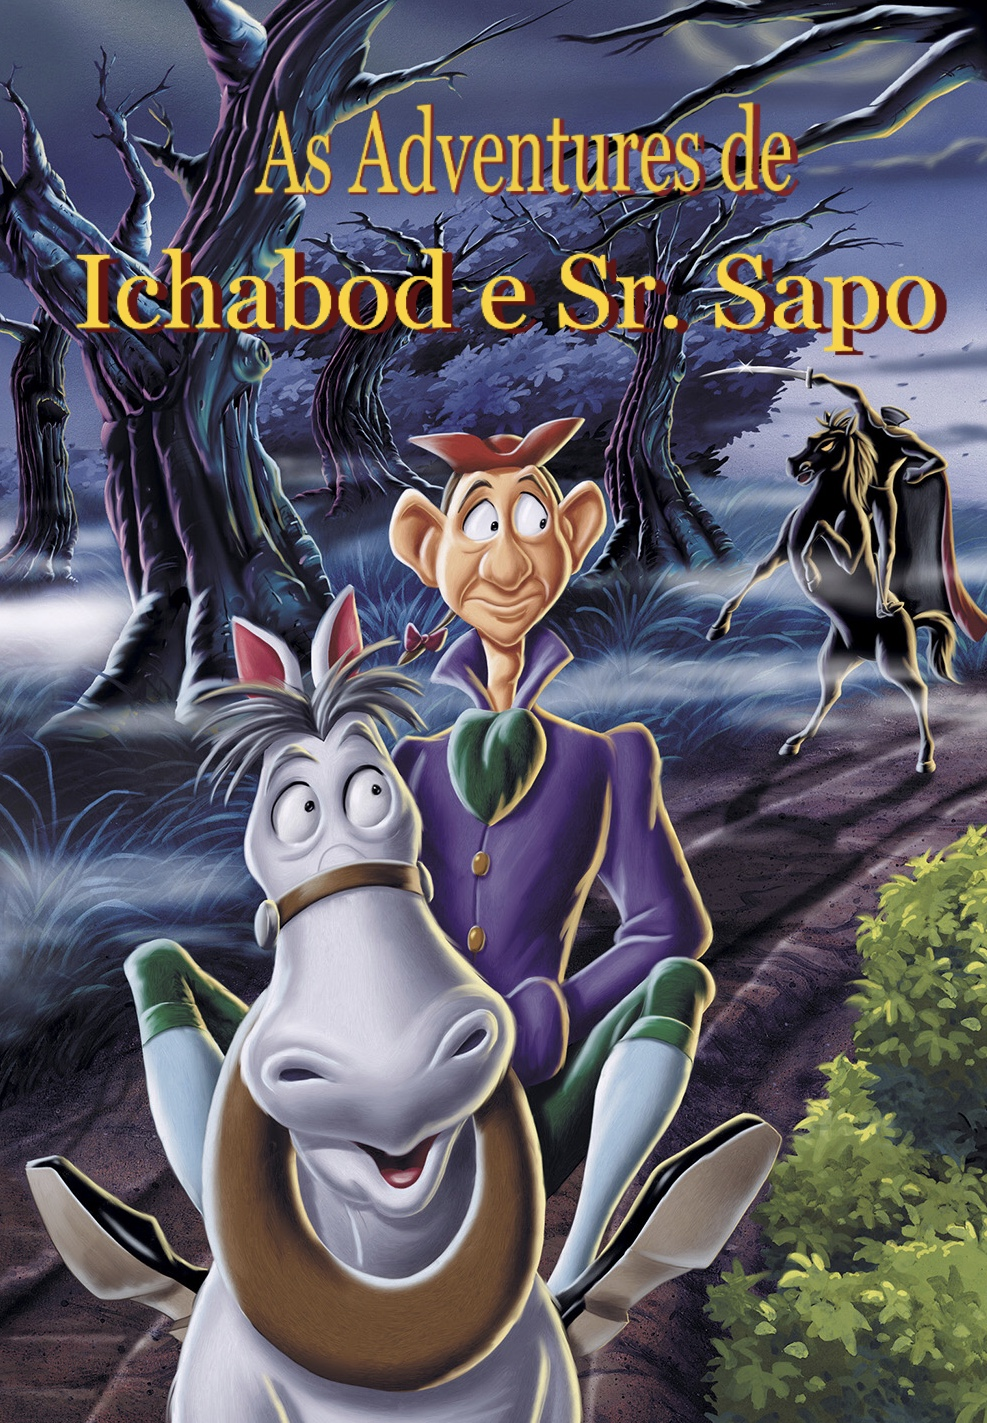 As Aventuras de Ichabod e Sr. Sapo